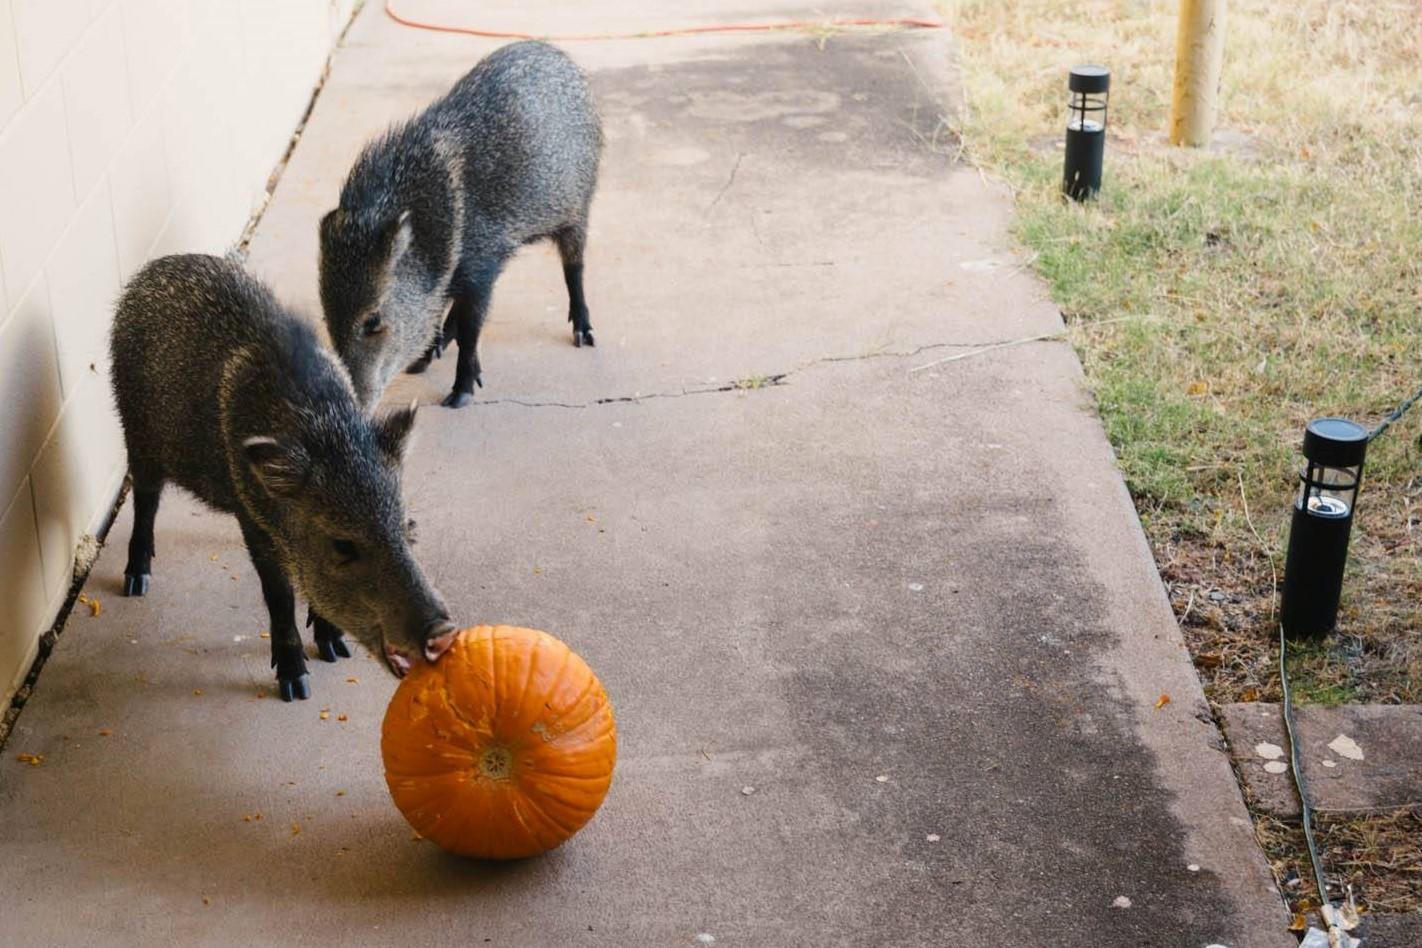 Wild javelinas eating rotting pumpkin